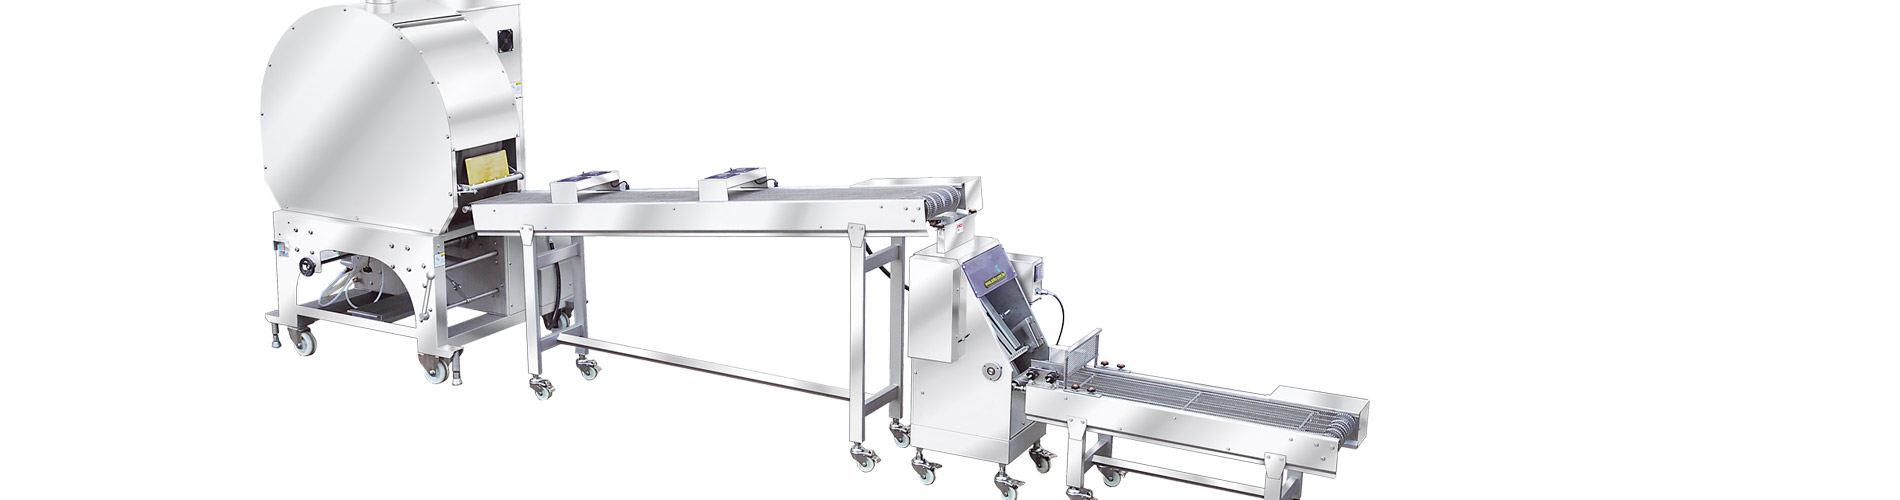 SRP Spring Roll & Samosa Pastry Automatic Spring Roll & Samosa Pastry Sheet Making Machine